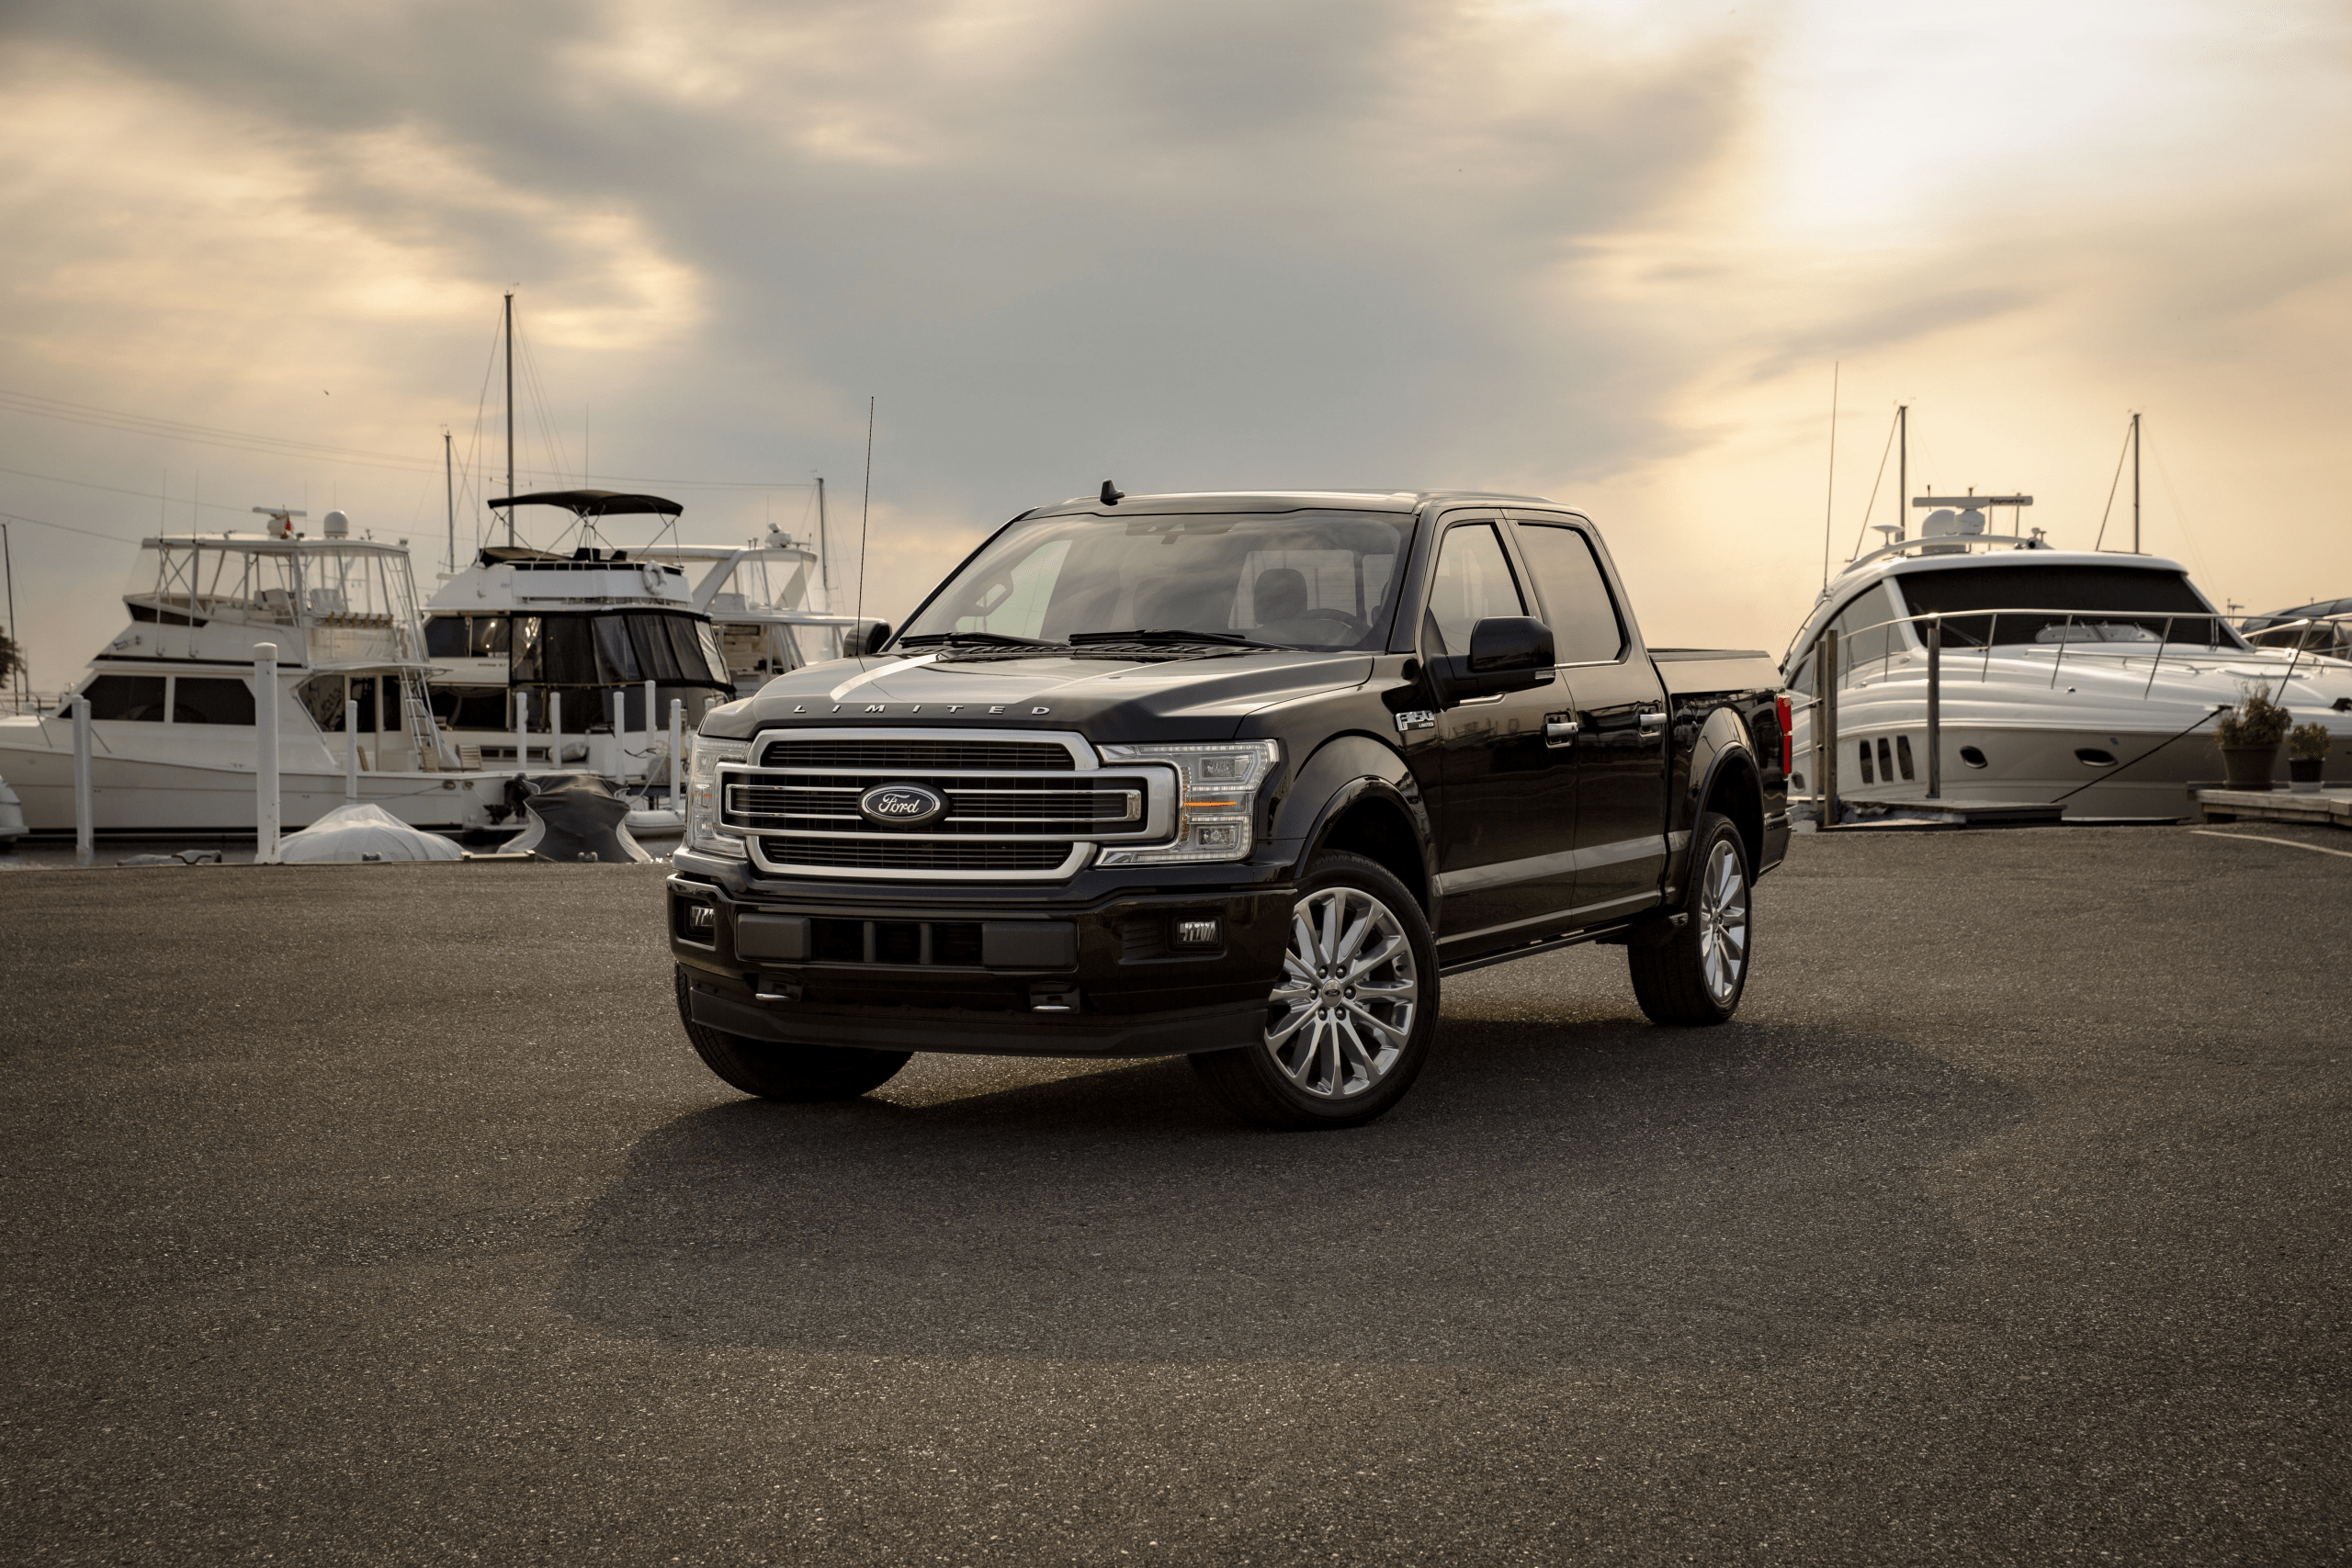 2021 Ford Thunderbird Ratings In 2020 Ford F150 Ford Ranger 2019 Ford